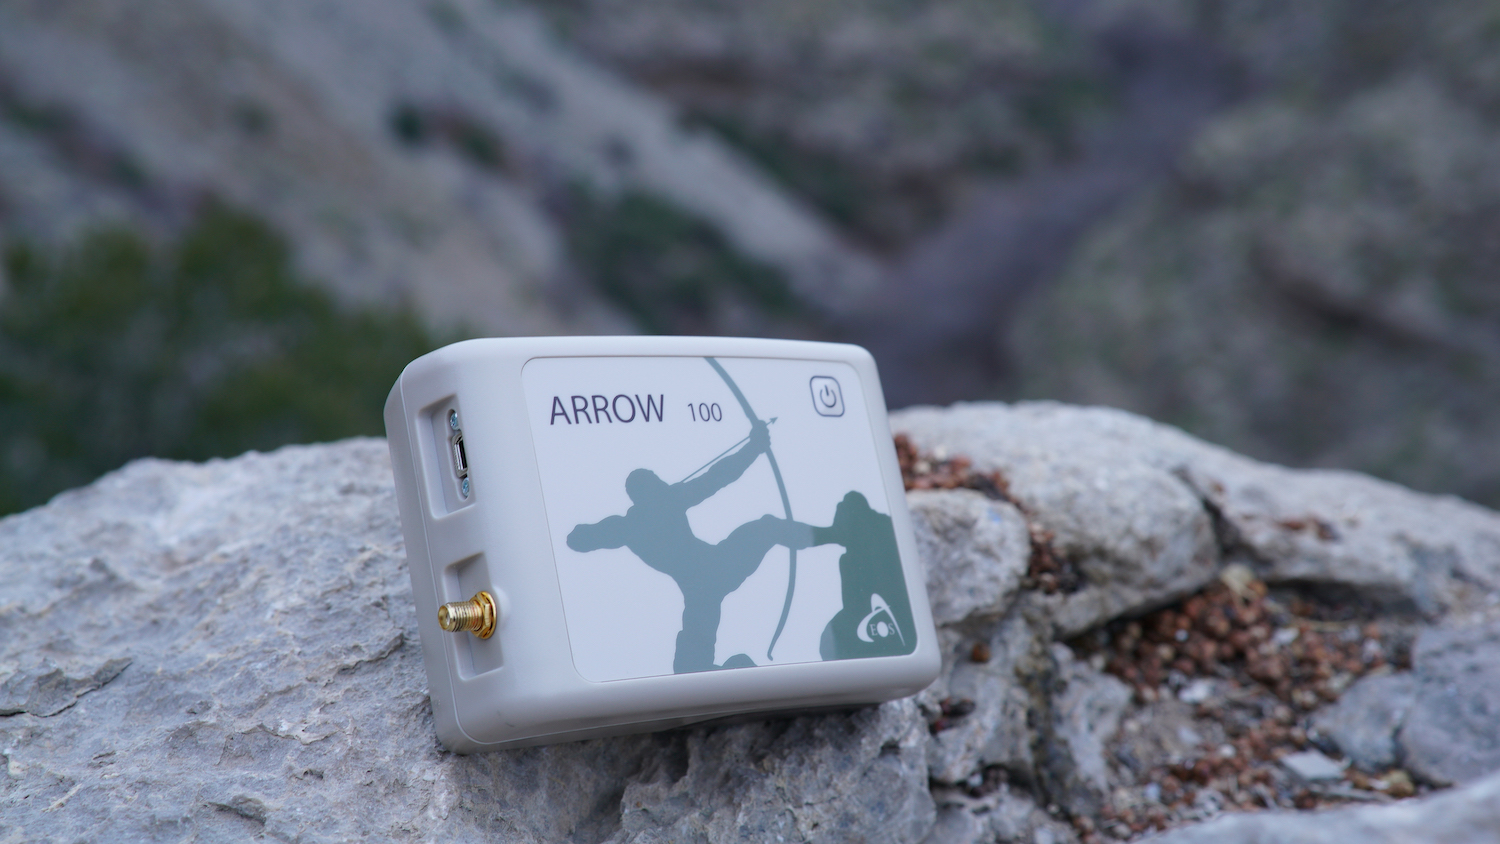 Arrow 100 GNSS receiver subfoot submeter GPS receiver four constellation for iOS, Android, Windows